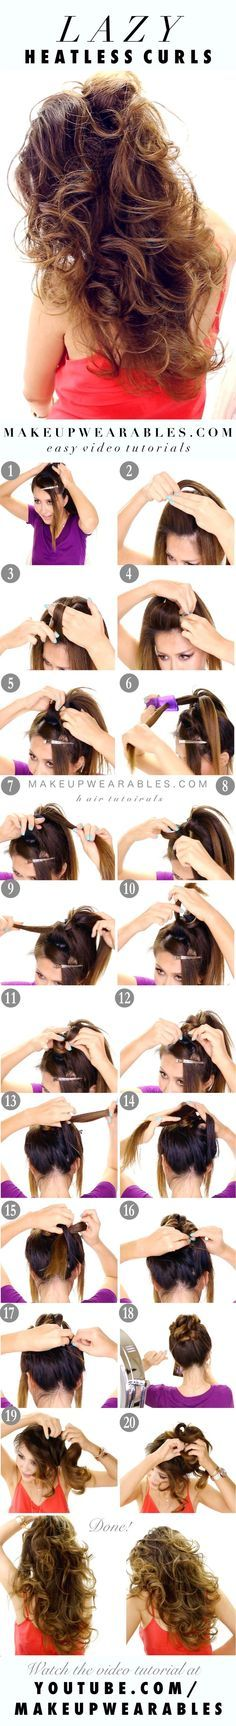 Easy lazy heatless curls overnight - no heat waves #hairstyles - Looks easy enough!